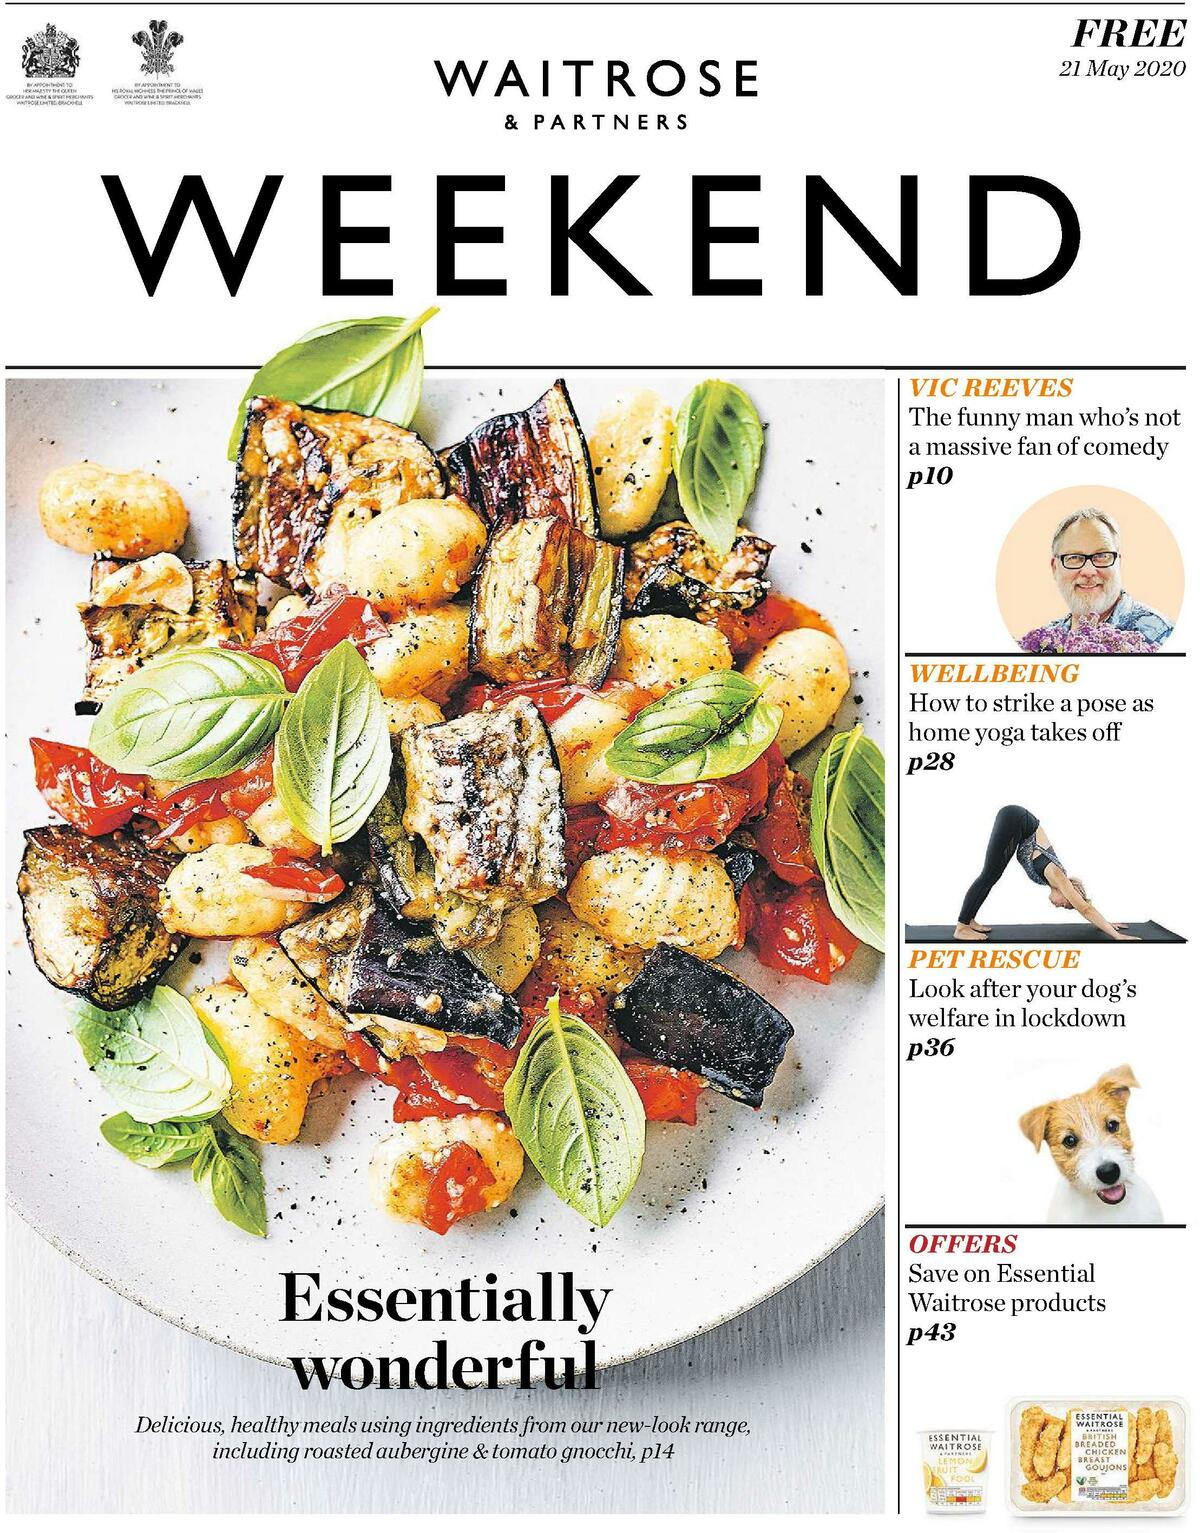 Waitrose Offers from May 21